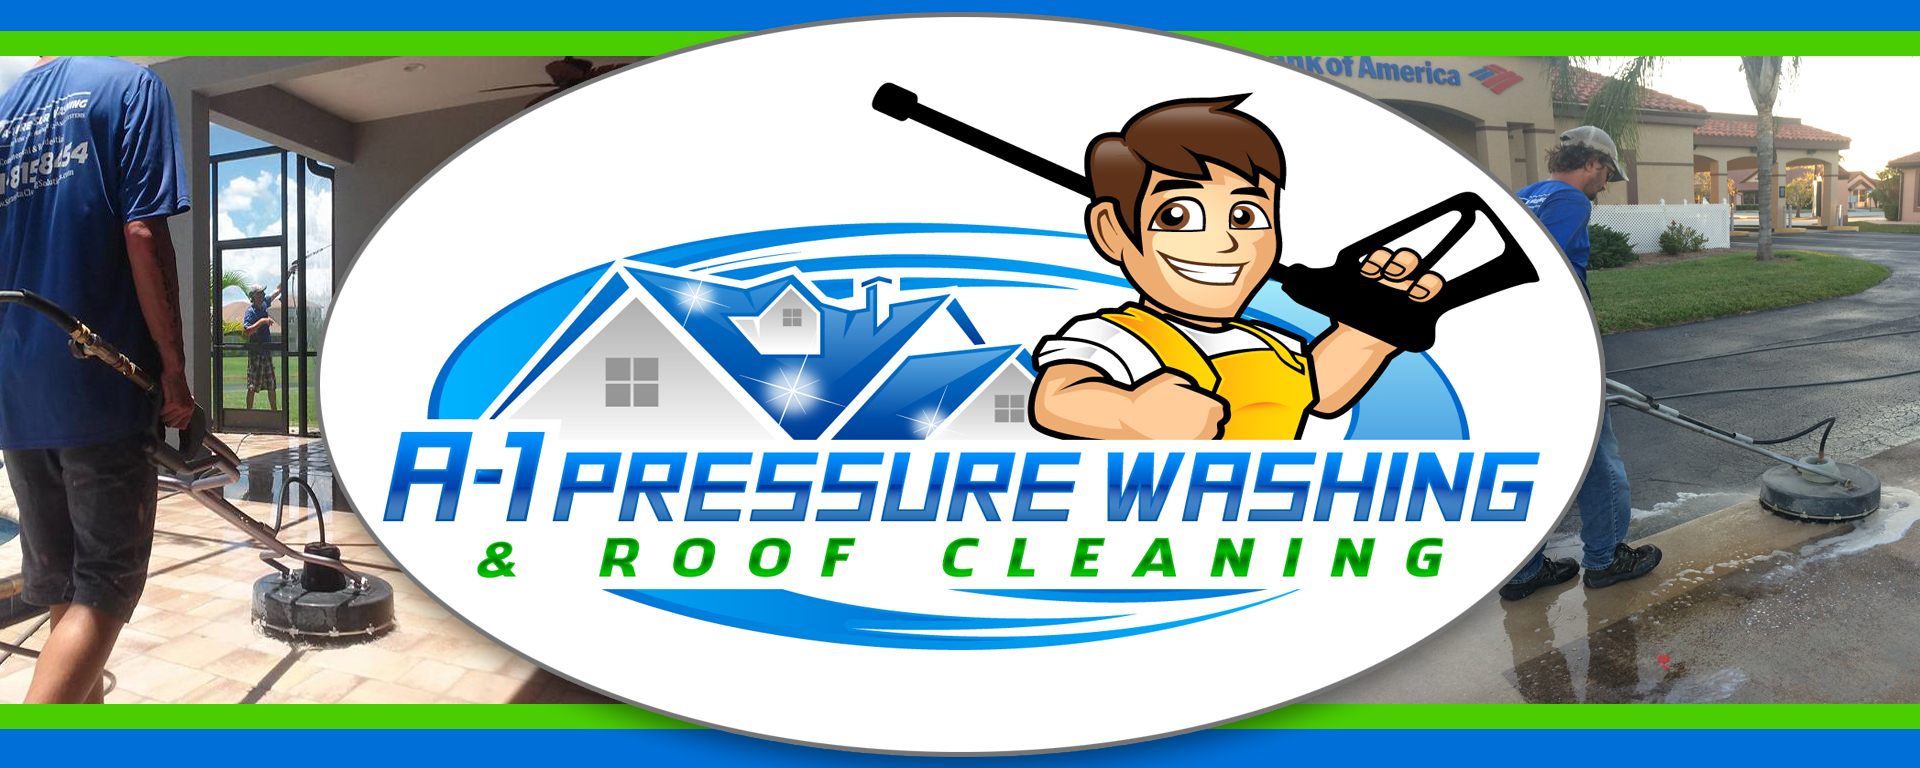 A 1 Pressure Washing Roof Cleaning Hi Low No Pressure Cleaning